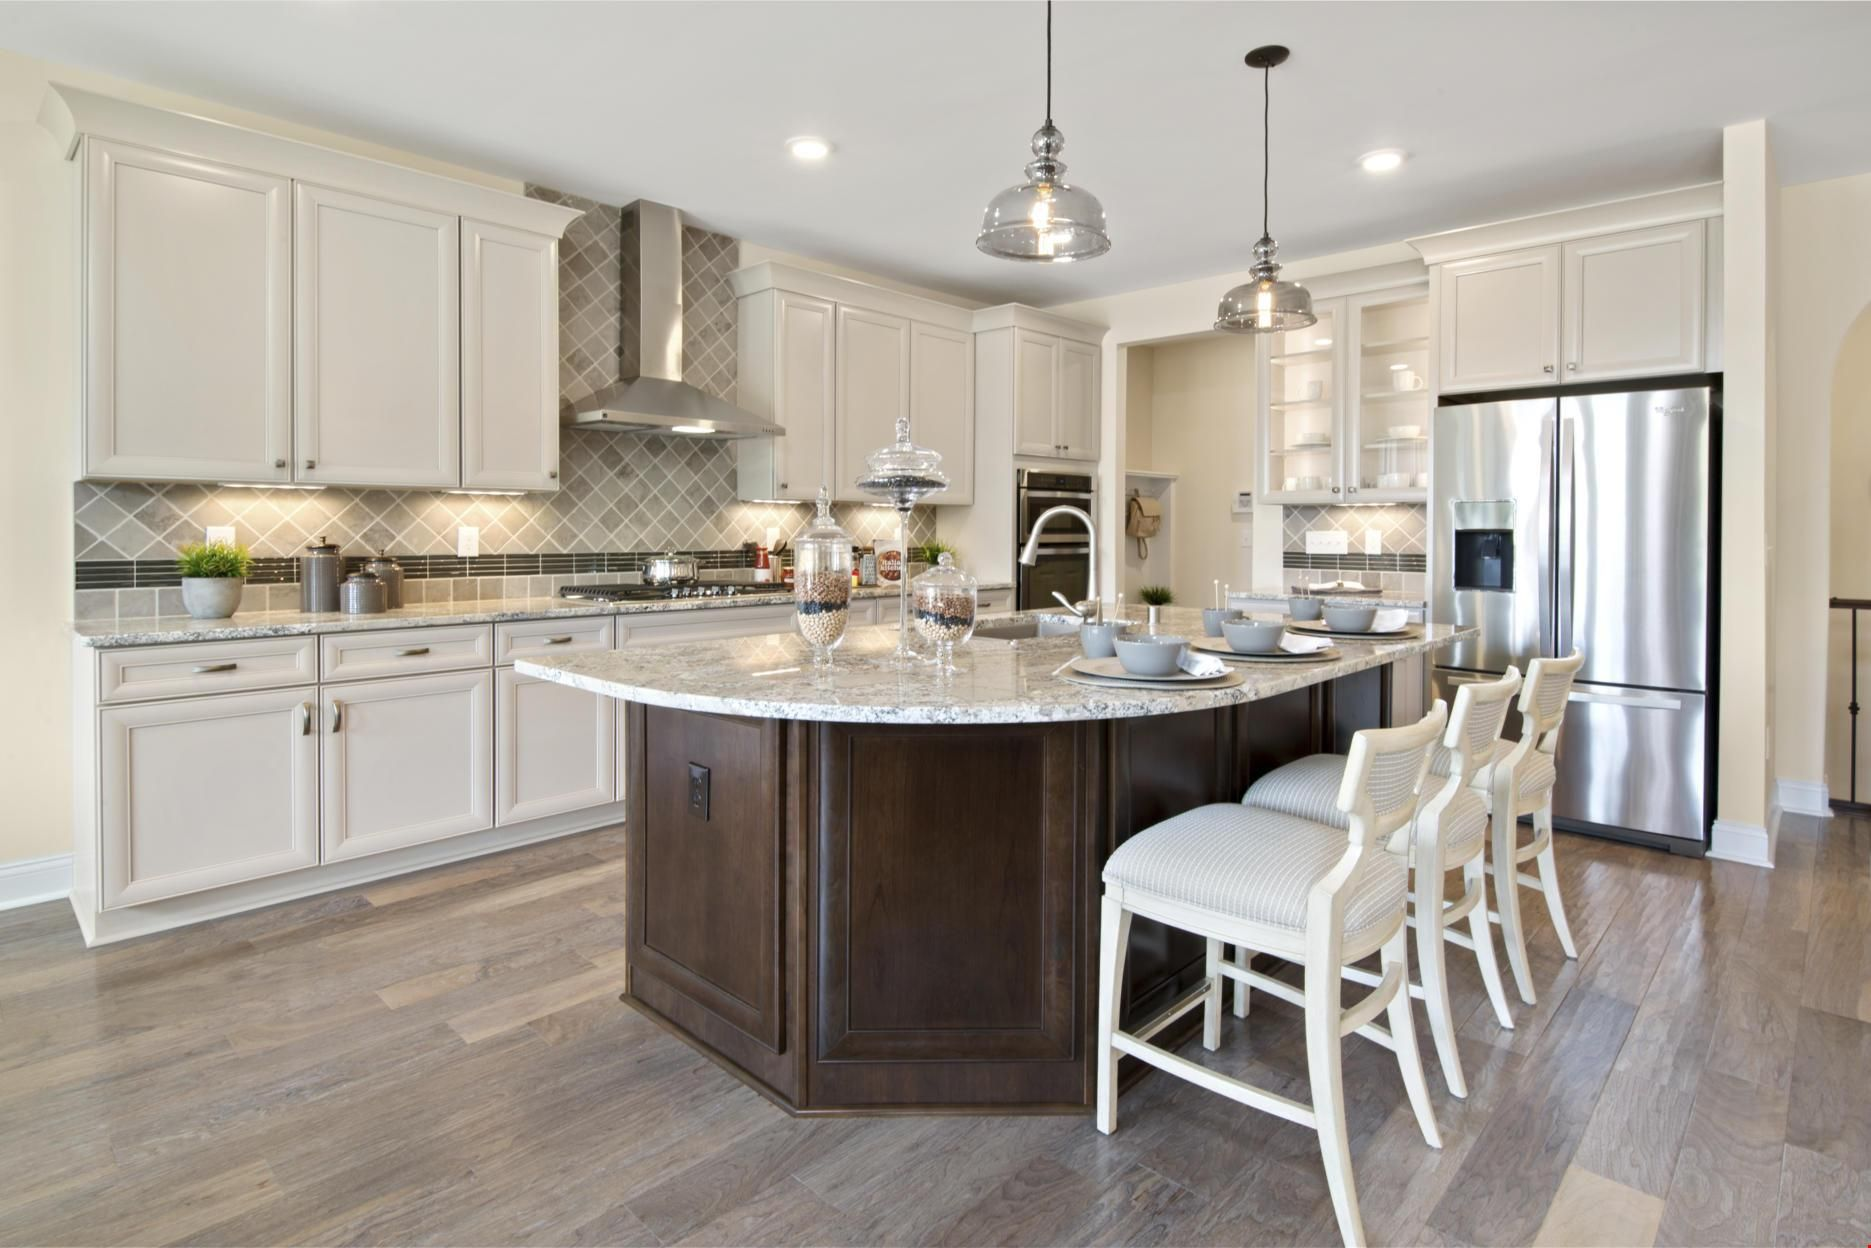 Light And Dark Cabinets Pair Beautifully In This Kitchen The Hialeah Plan A New Home By Drees Homes A Log Home Kitchens Luxury Kitchen Design Luxury Kitchens